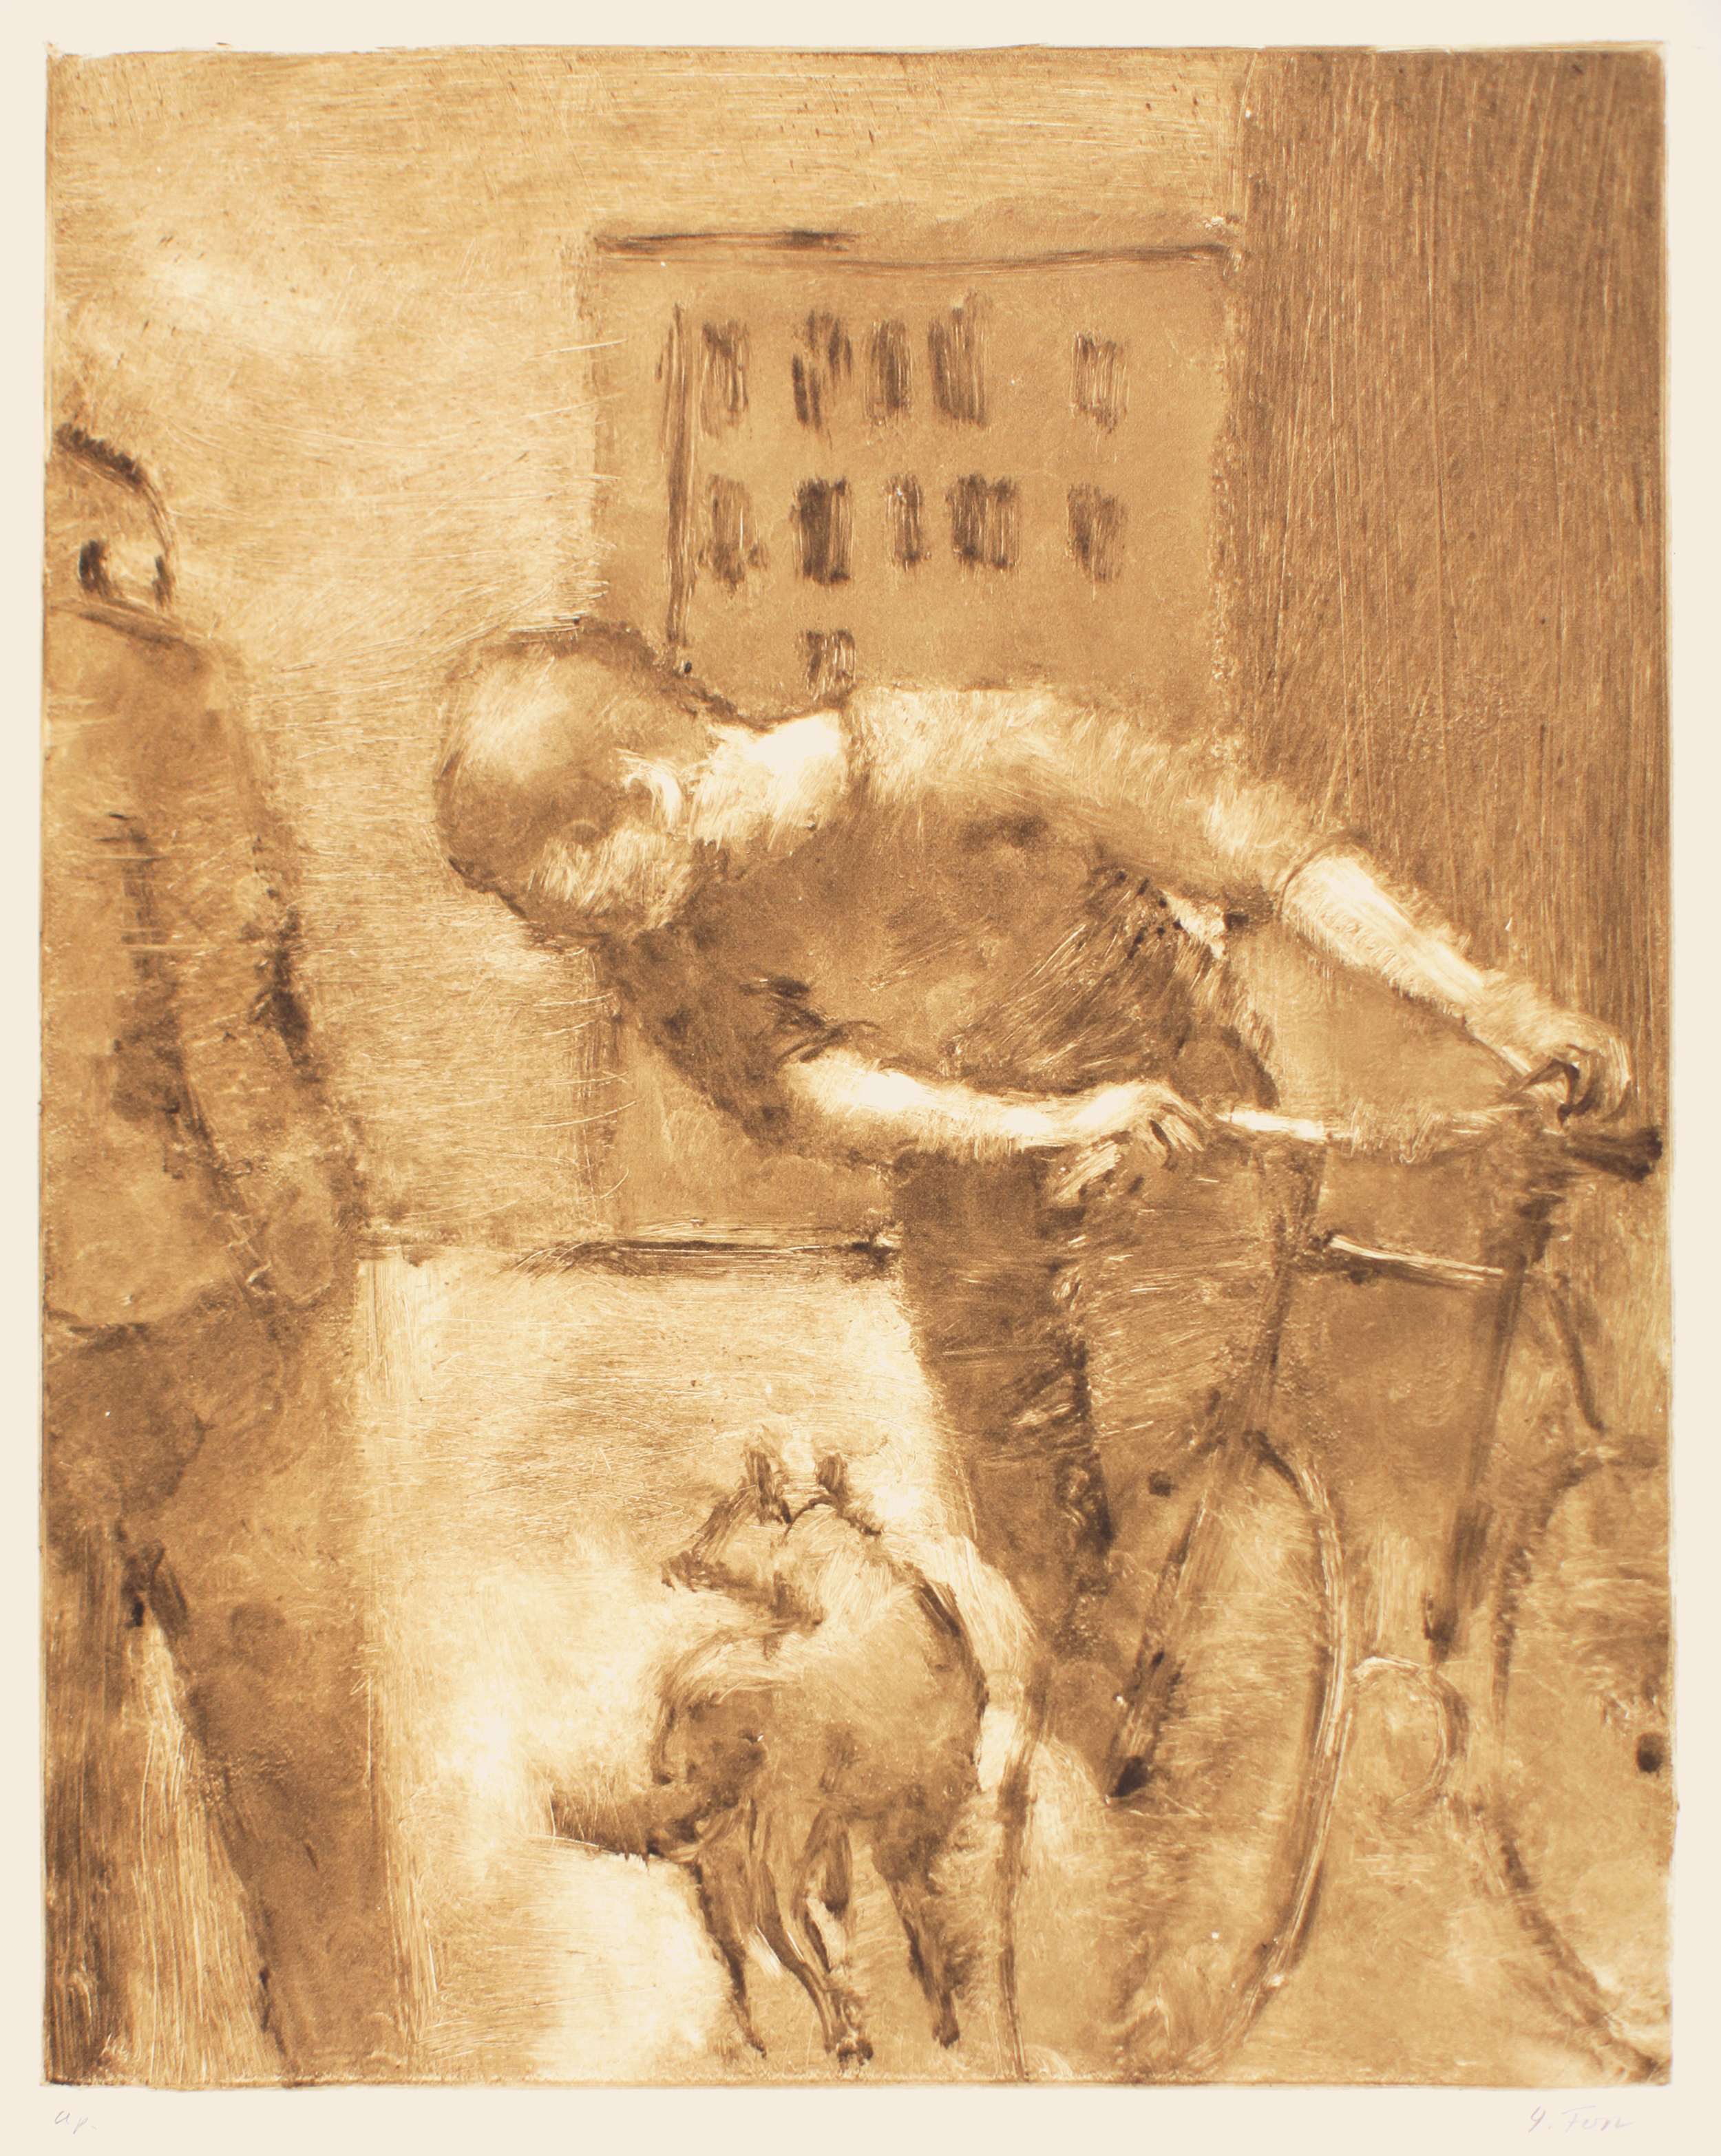 1989_Boy_with_Bicycle_and_Dog_monotype_on_paper_30x22in_image15x12in_ap_WPF439.jpg